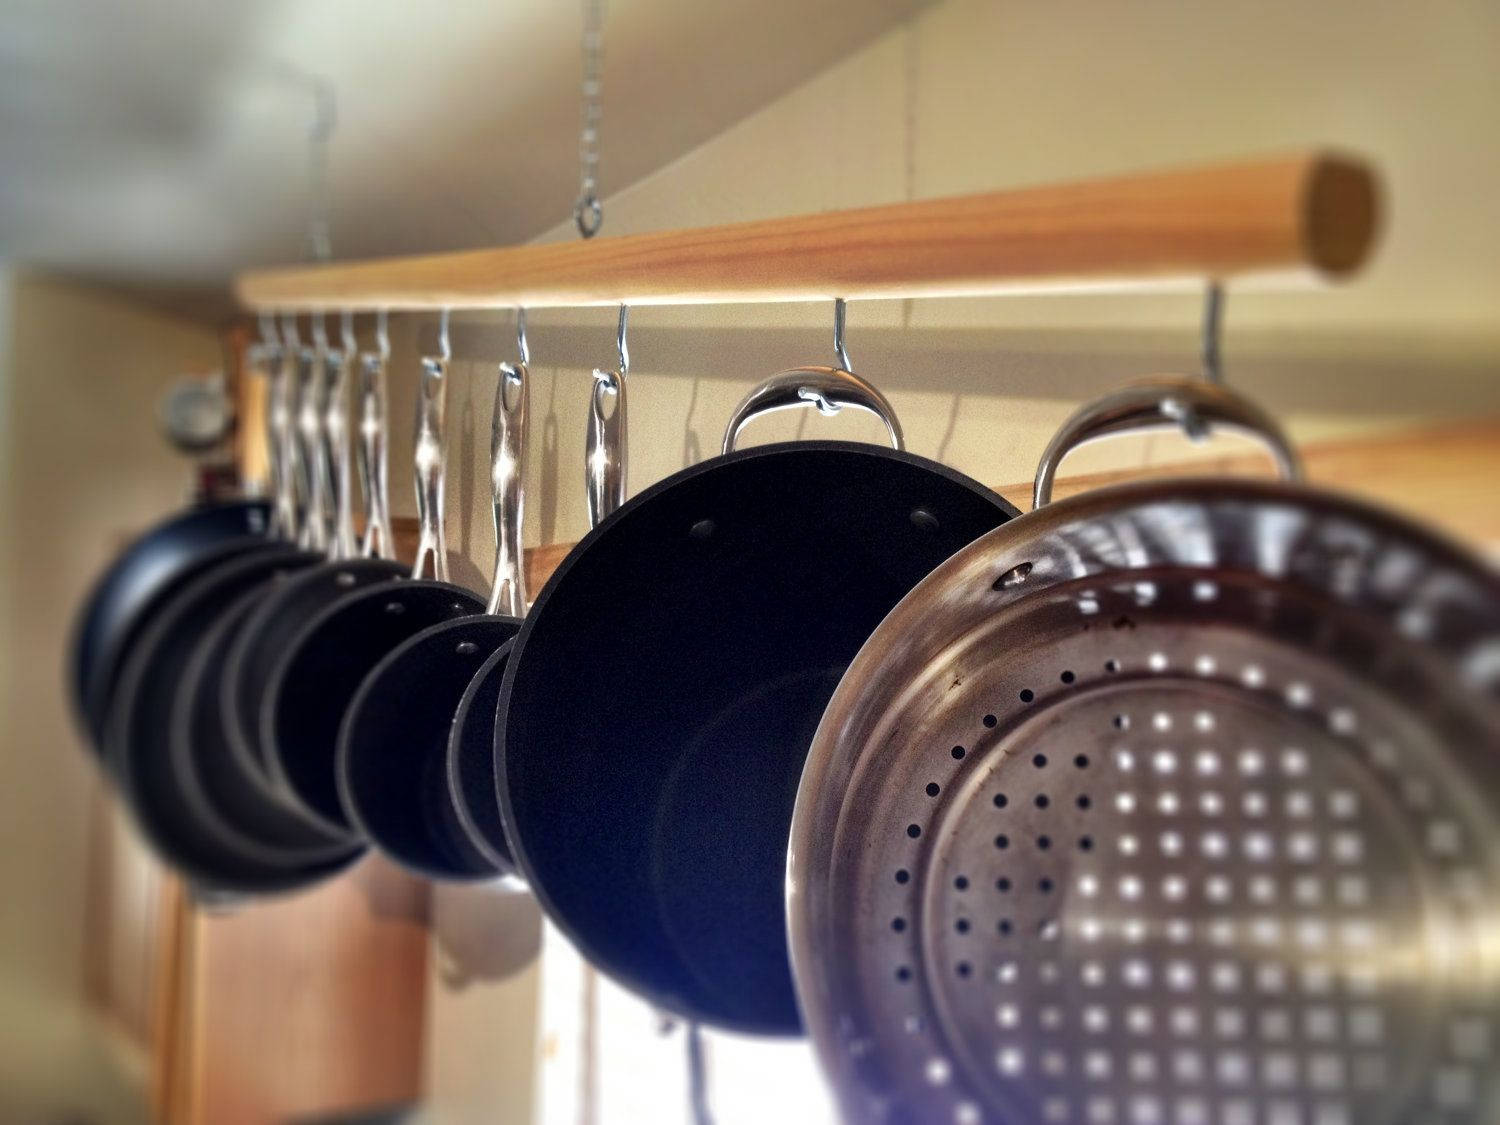 Hanging Pots And Pans On Wall how to choose the right rack for hanging pots and pans | pot rack